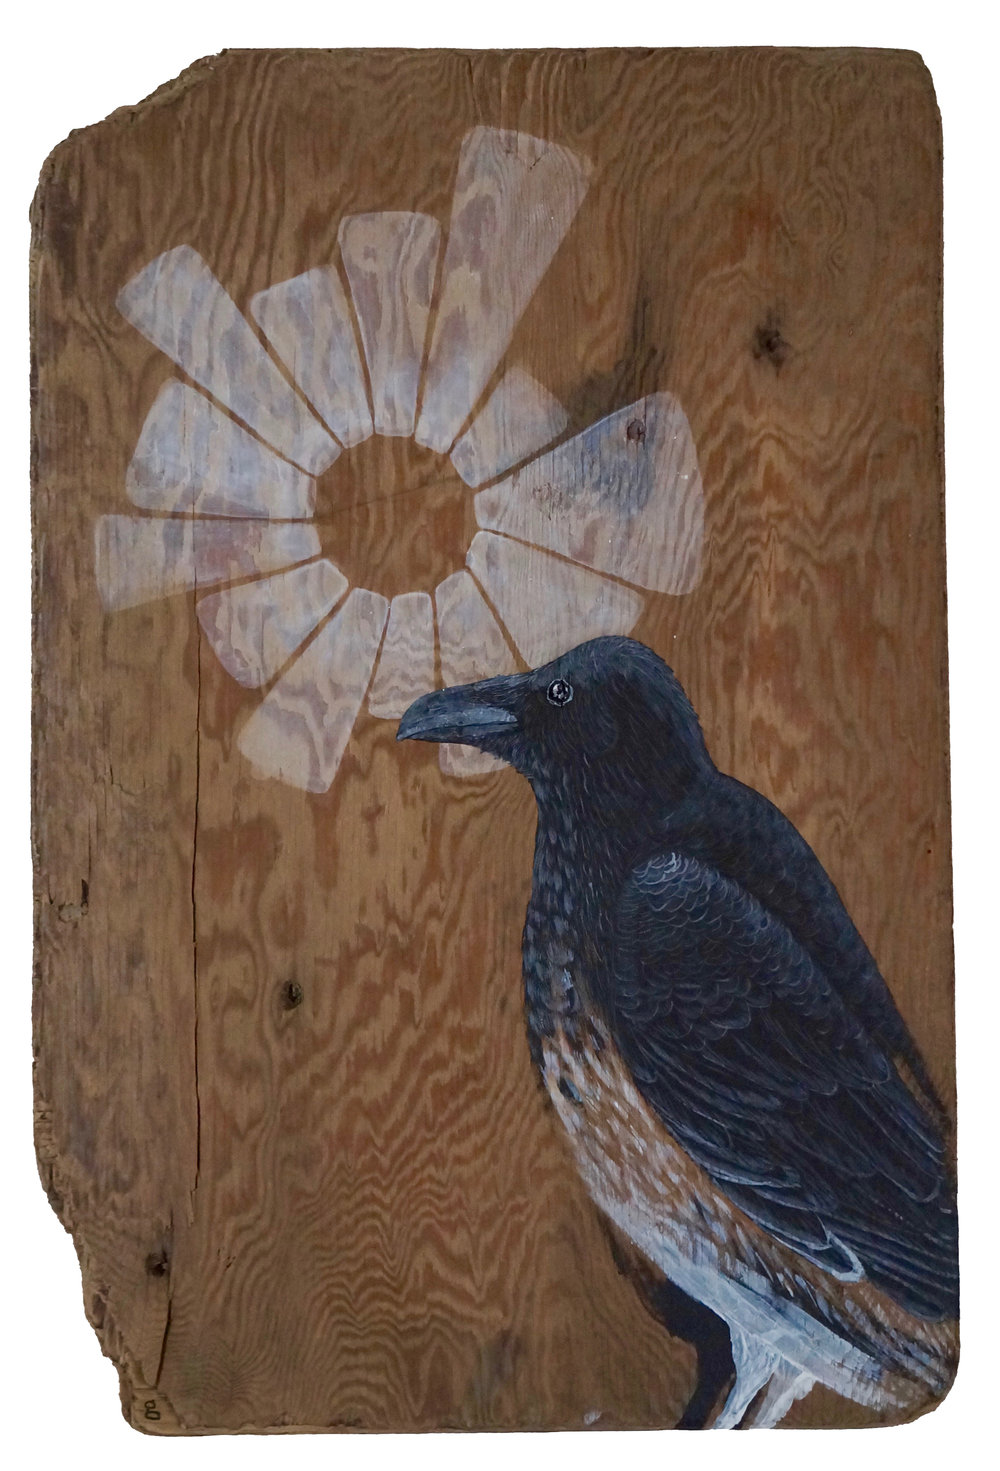 "GHOST RAVEN  2017  ACRYLIC ON FOUND WOOD  21"" x 14"" x 1/2"""